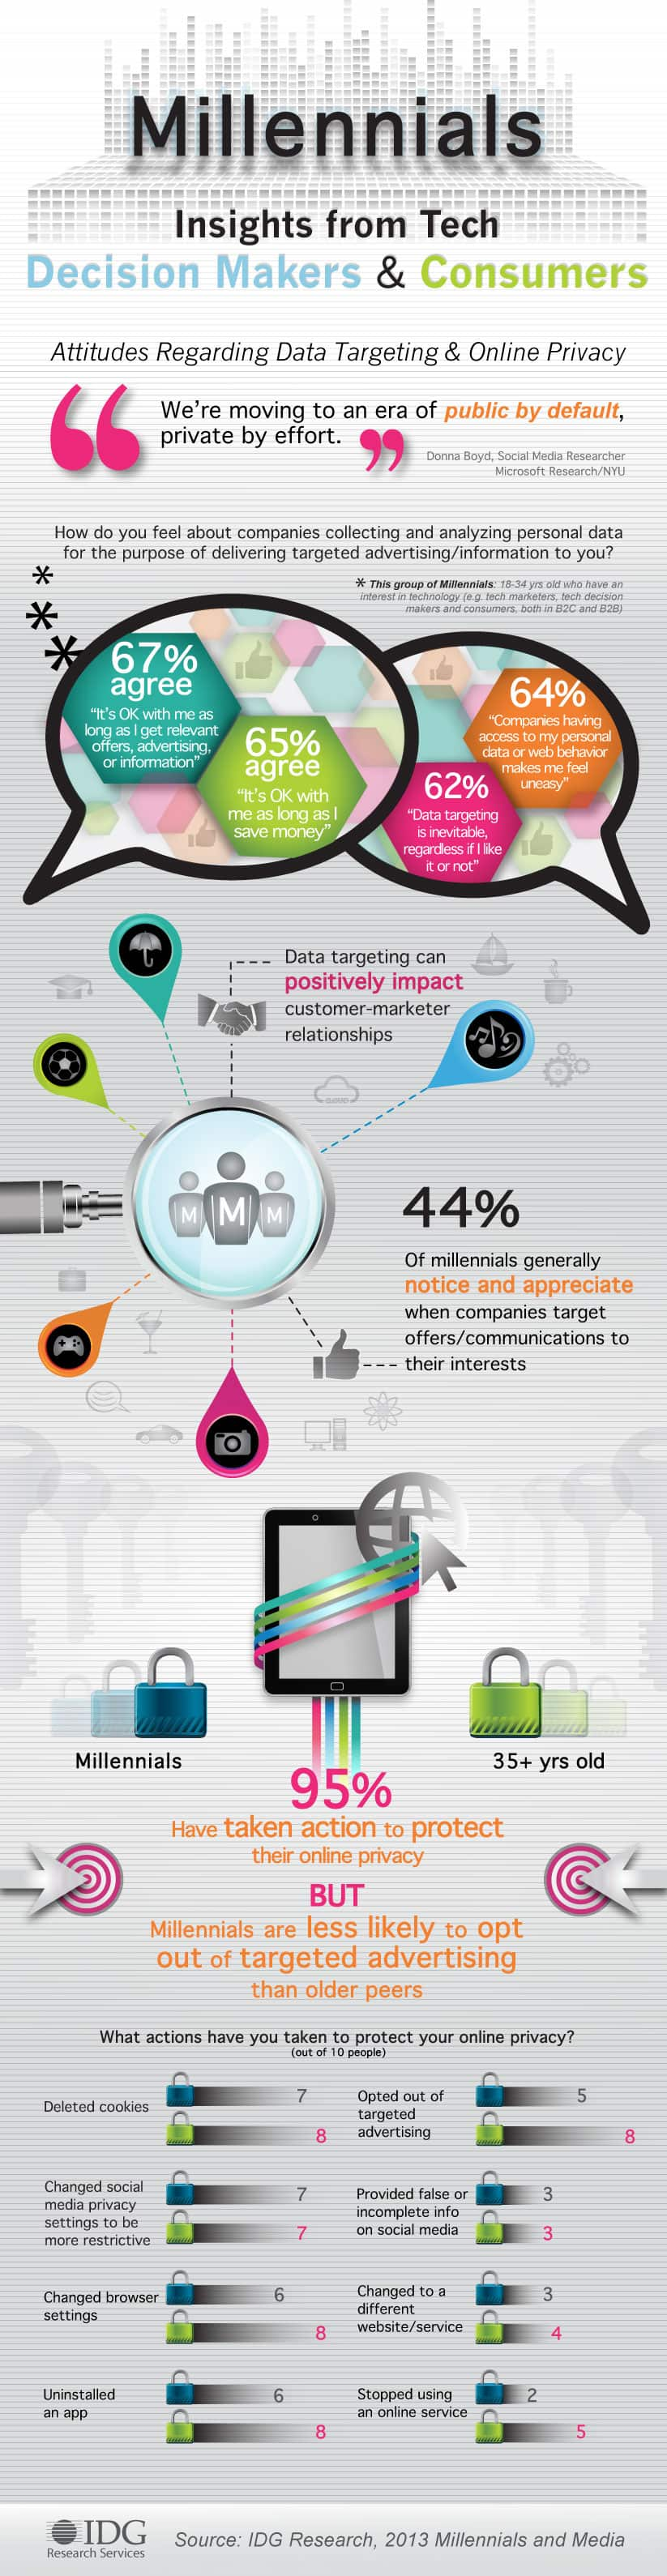 How Millennials Feel About Data Targeting and Online Privacy [infographic]